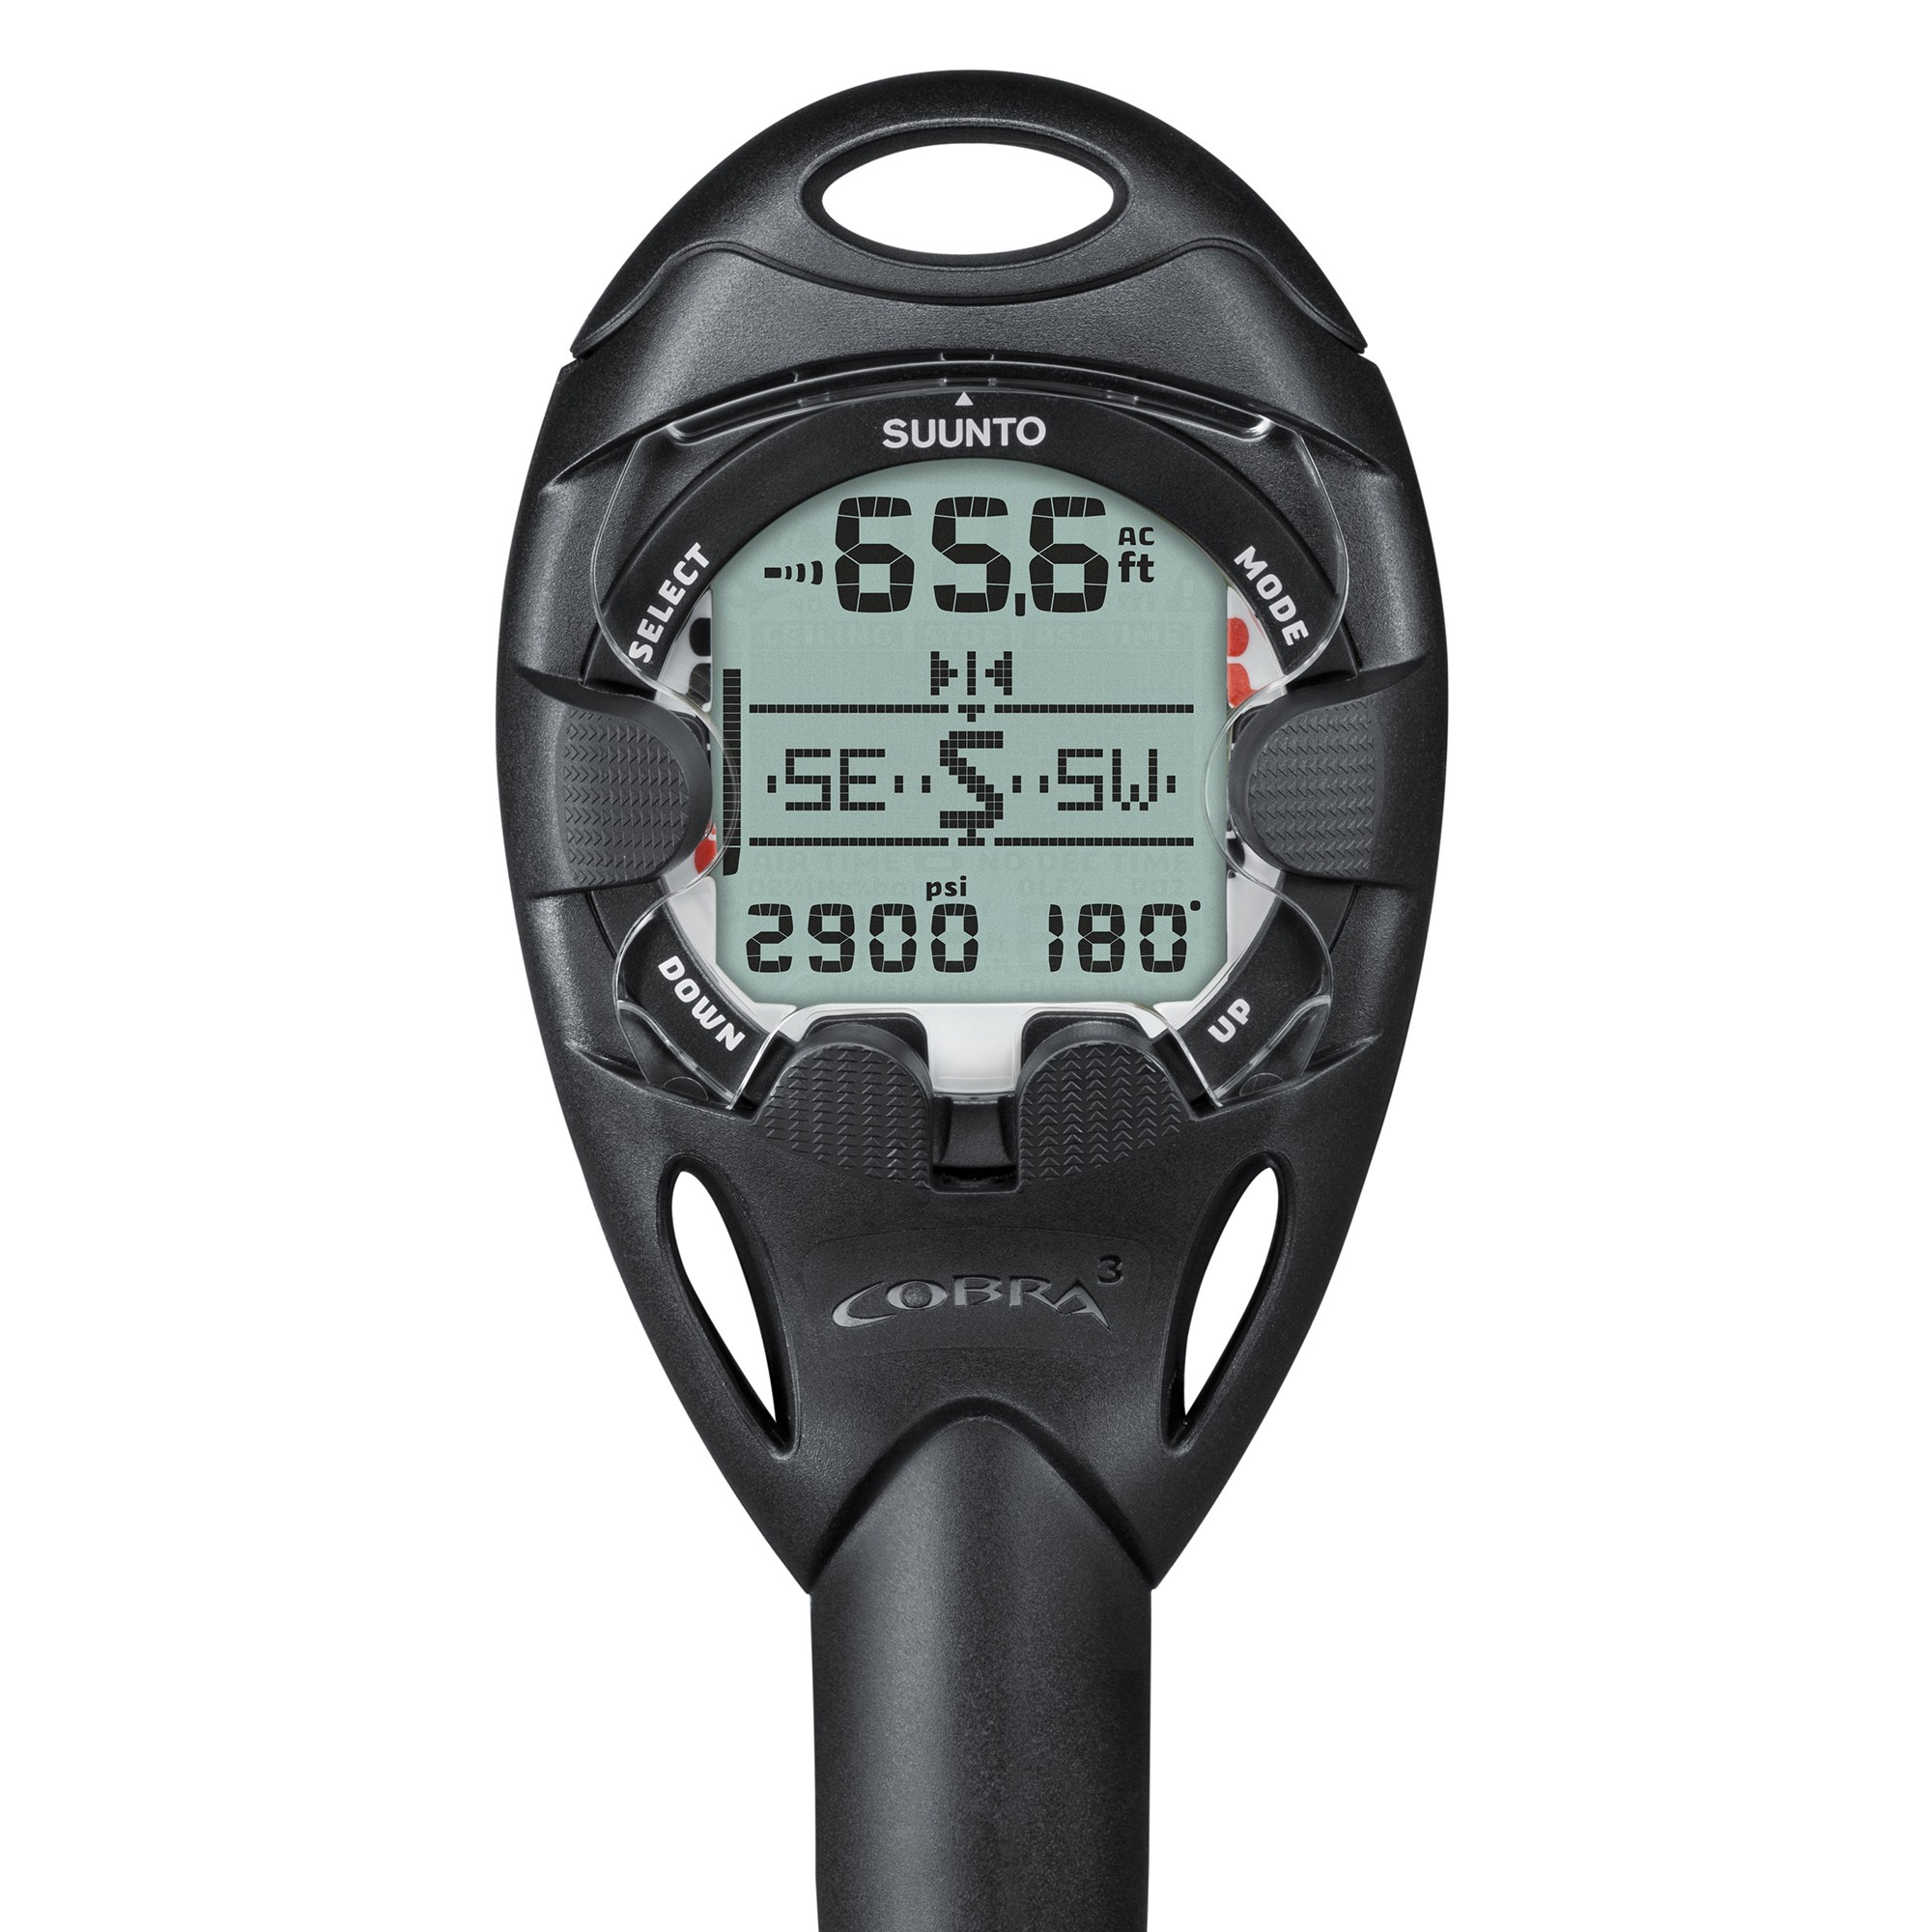 Suunto Cobra 3 with Quick Disconnect and USB Cable